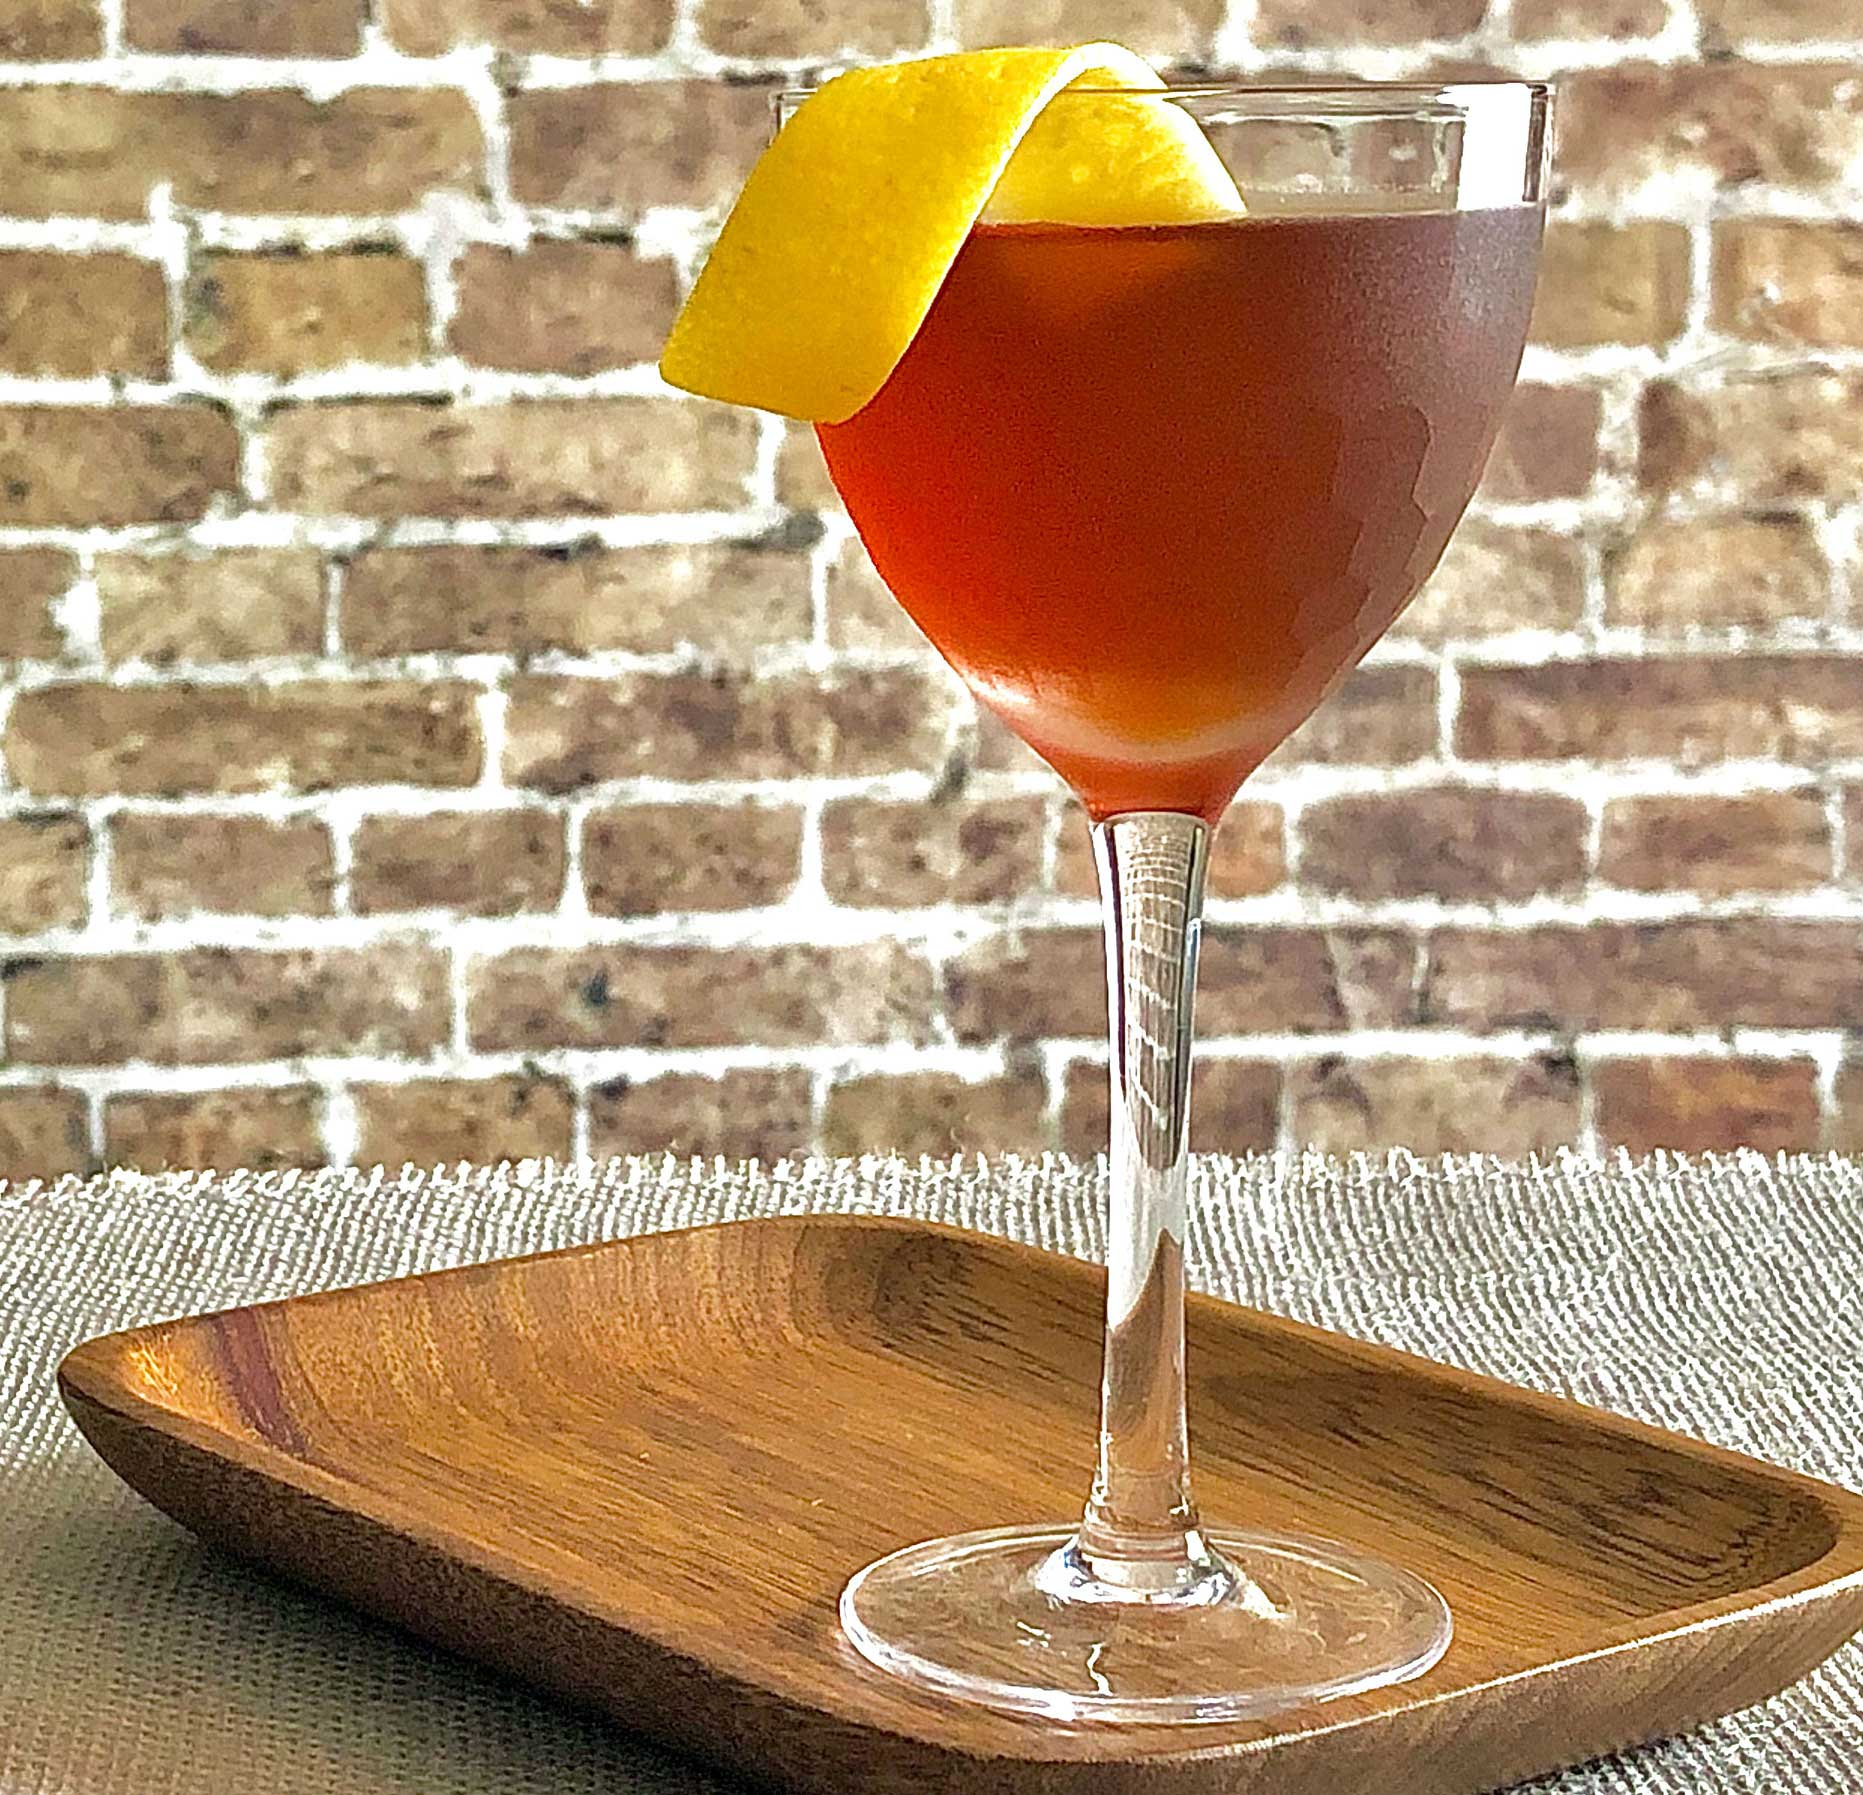 An example of the Fort Point, the mixed drink (cocktail), by Erik Adkins, Heaven's Dog, San Francisco, featuring rye whiskey, Cocchi Barolo Chinato, and Rothman & Winter Orchard Apricot Liqueur; photo by Lee Edwards